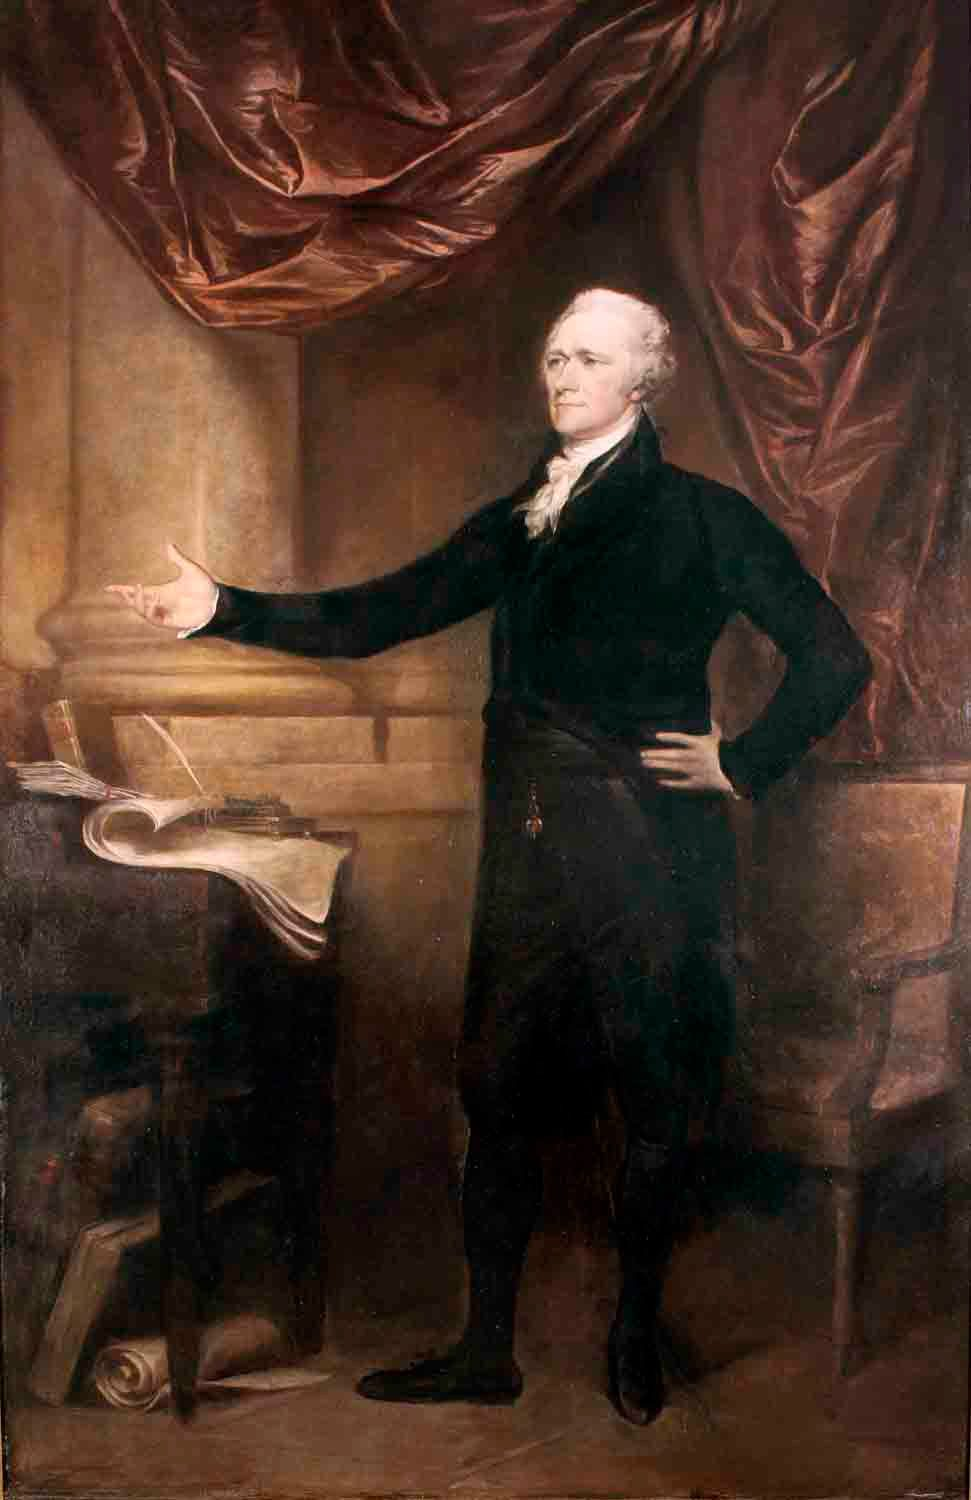 John Trumbull, Alexander Hamilton ], 1804–1805. Oil on canvas, 94 x 60 in. City Hall Portrait Collection, Collection of the City of New York.